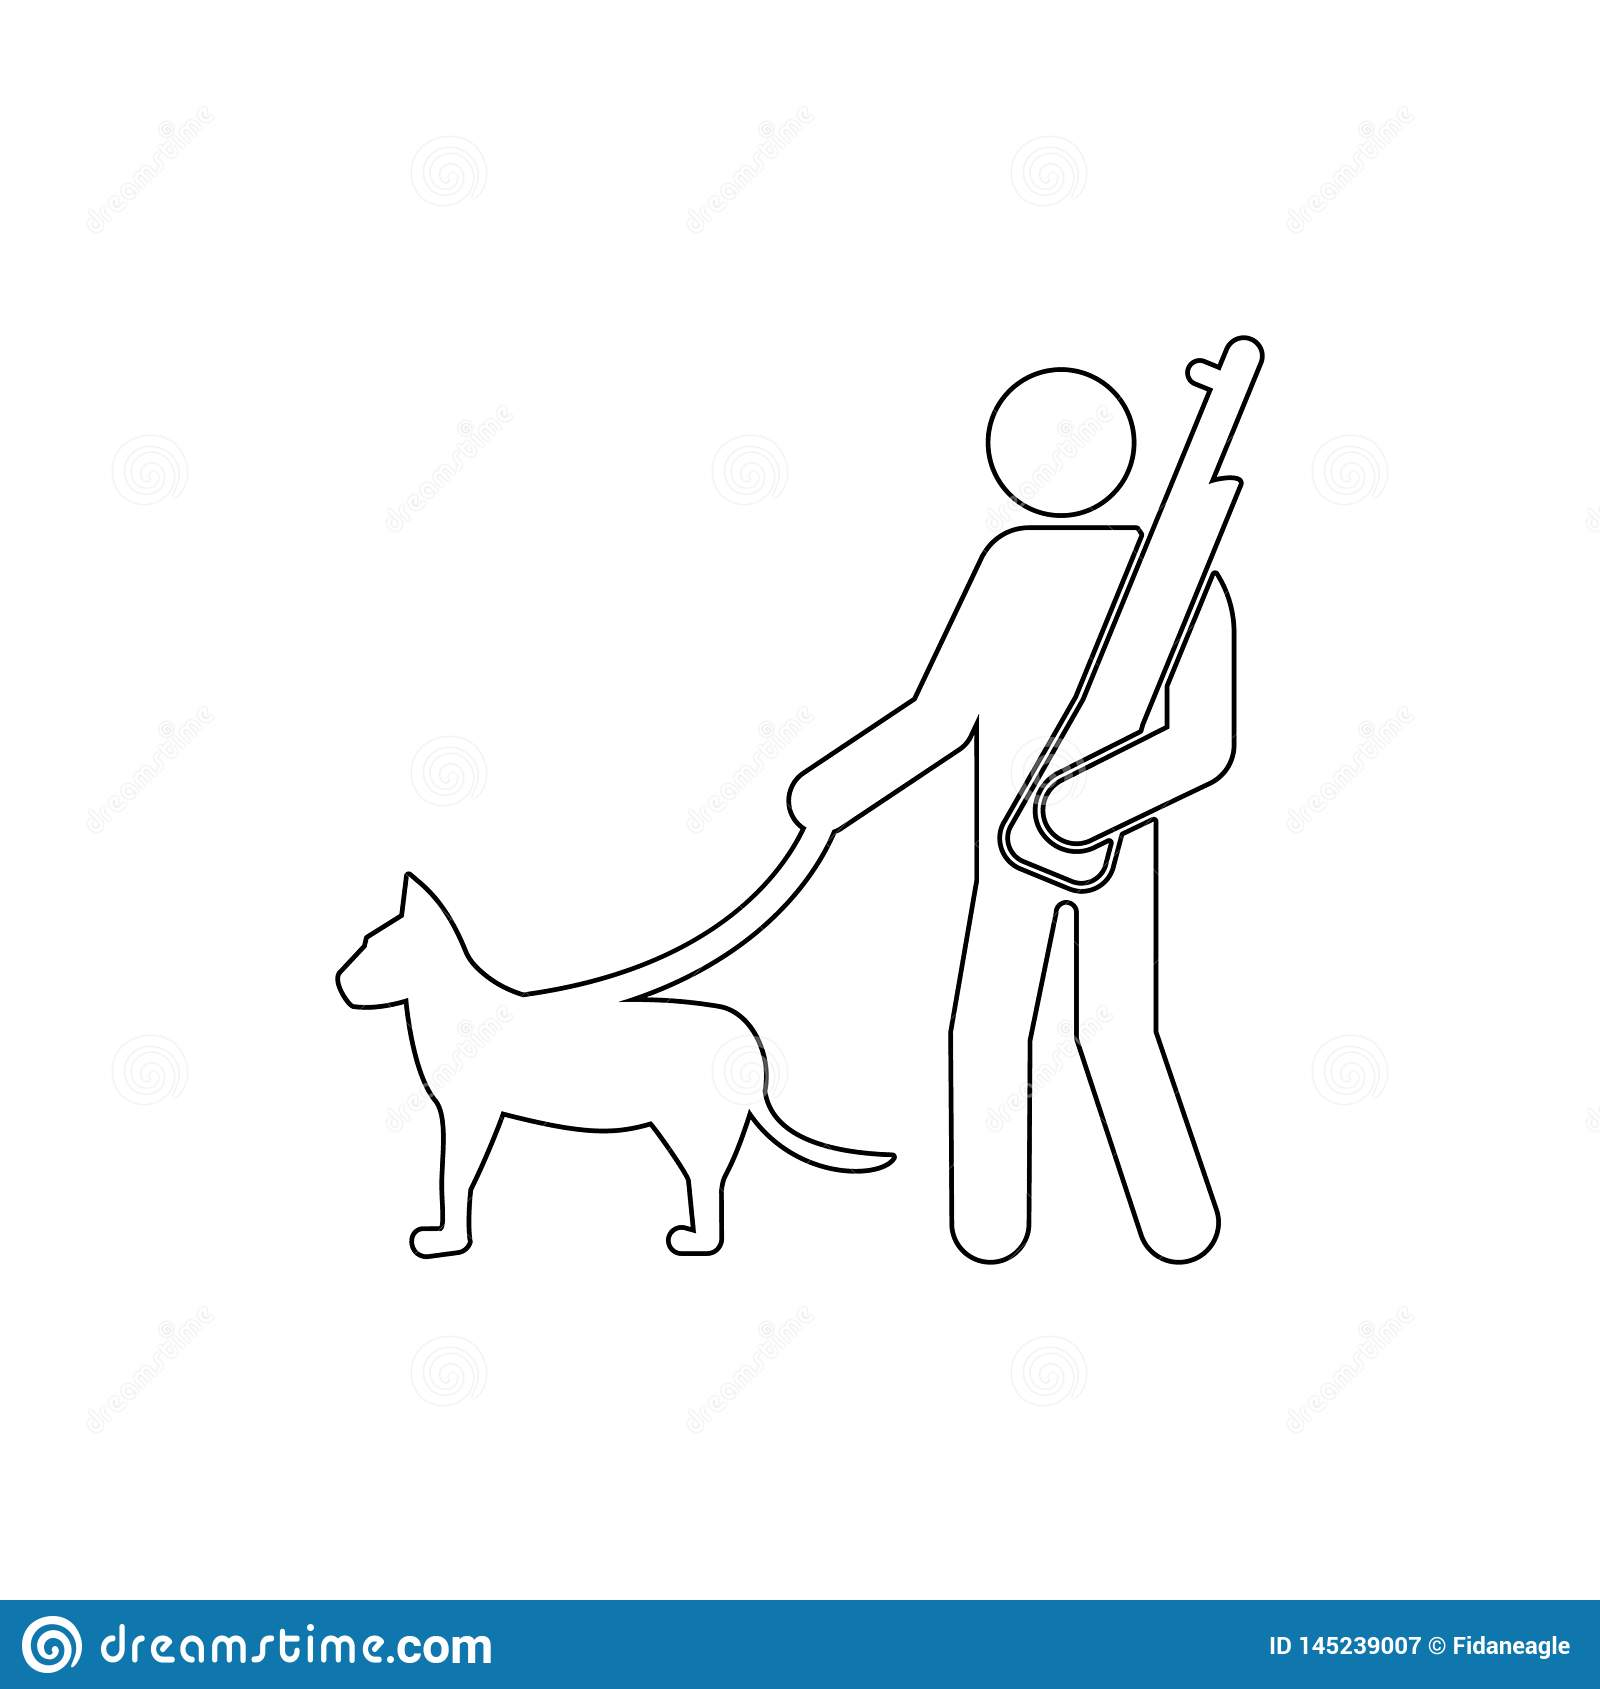 Soldier, dog, gun, canine outline icon. Can be used for web, logo, mobile app, UI UX